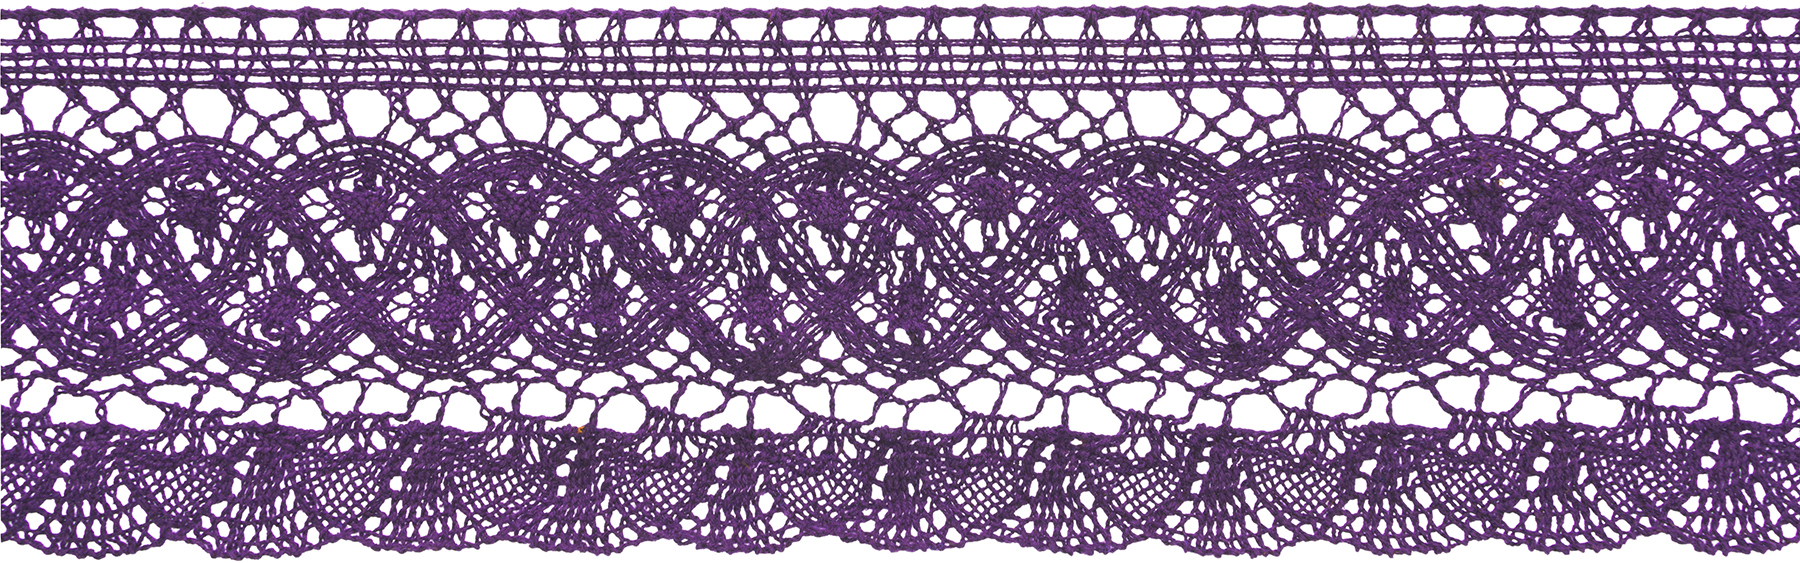 Wrights Large Fan Cluny Lace Trim 3.5\u0027\u0027x12 yds-Plum